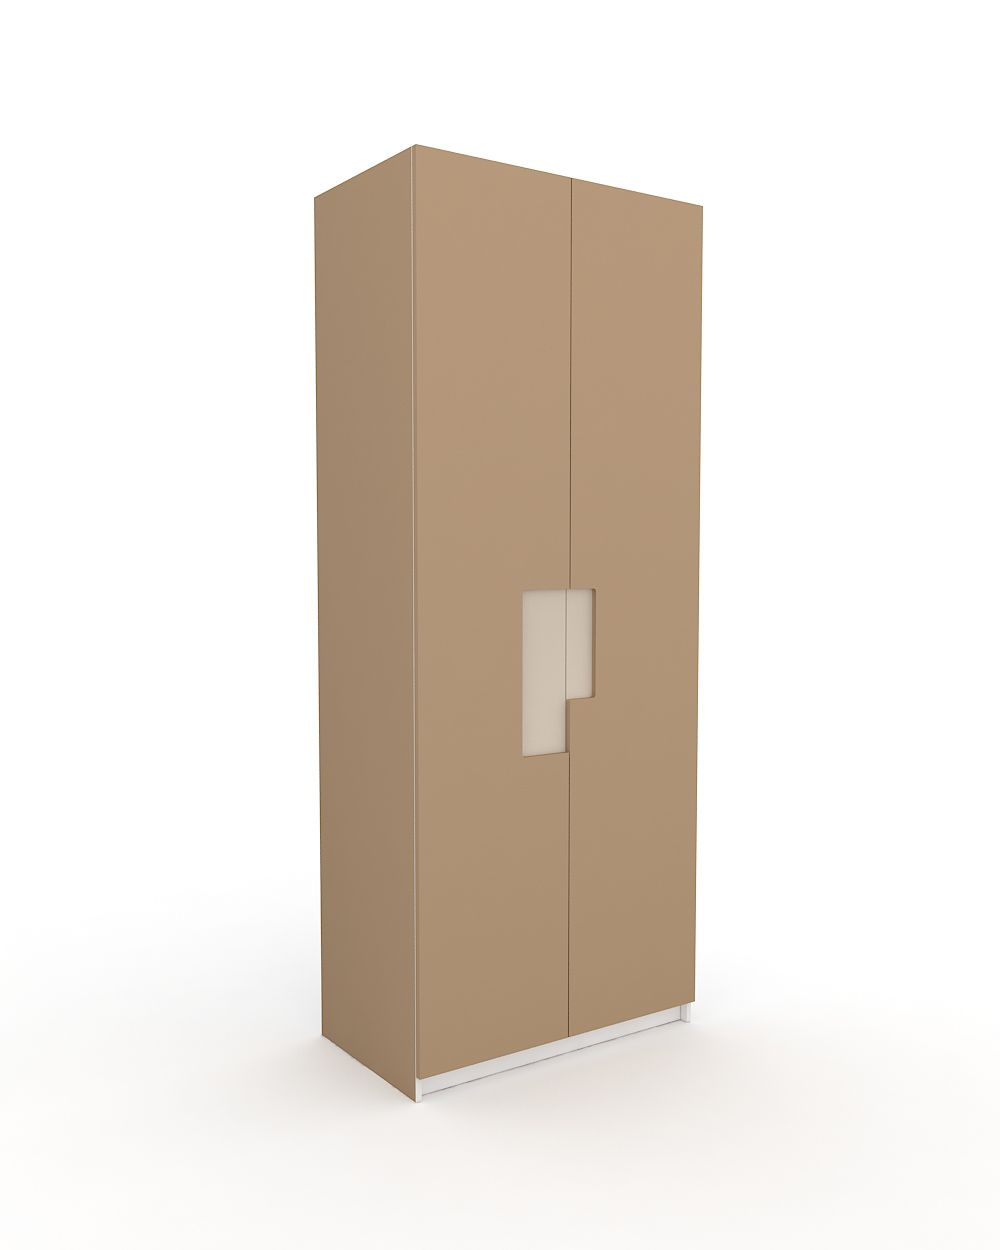 Two-door cappuccino lacquered ARIES wardrobe with beige handle A two-door wardrobe for use in all interior spaces. The innovative compound carved handle with high quality lacquer spreads a sense of refinement and luxury in the space.